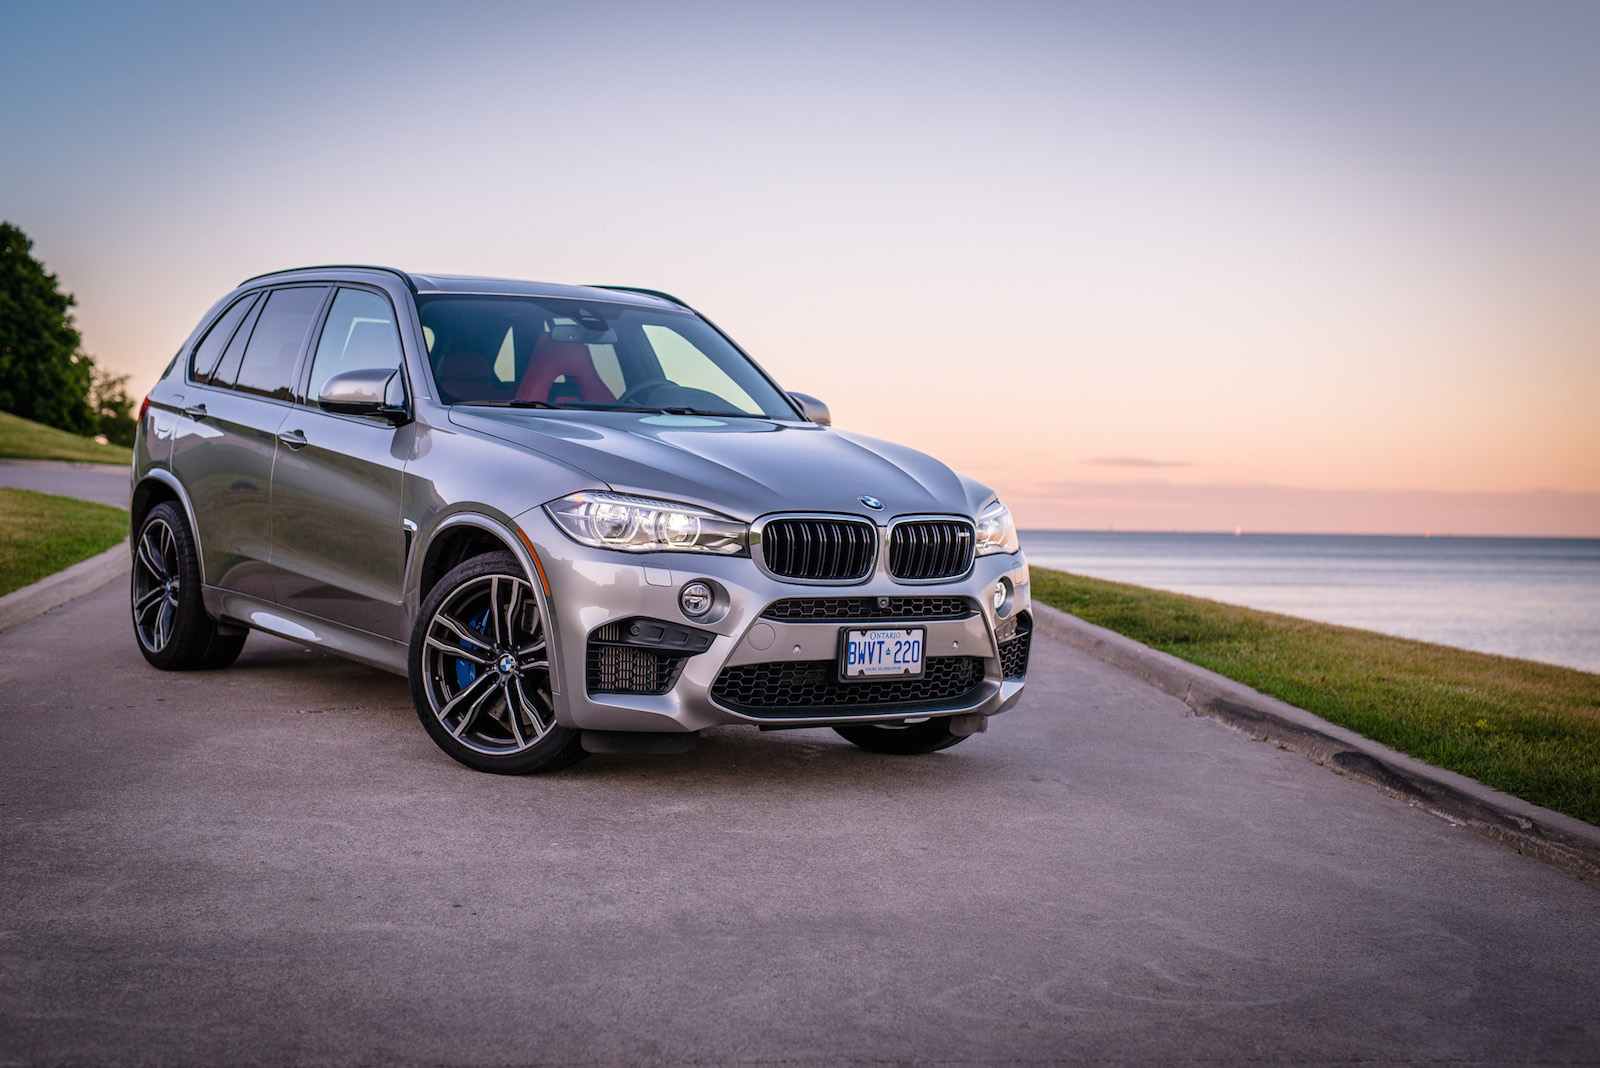 Bmw X5 Suv Second Hand 2018 Dodge Reviews